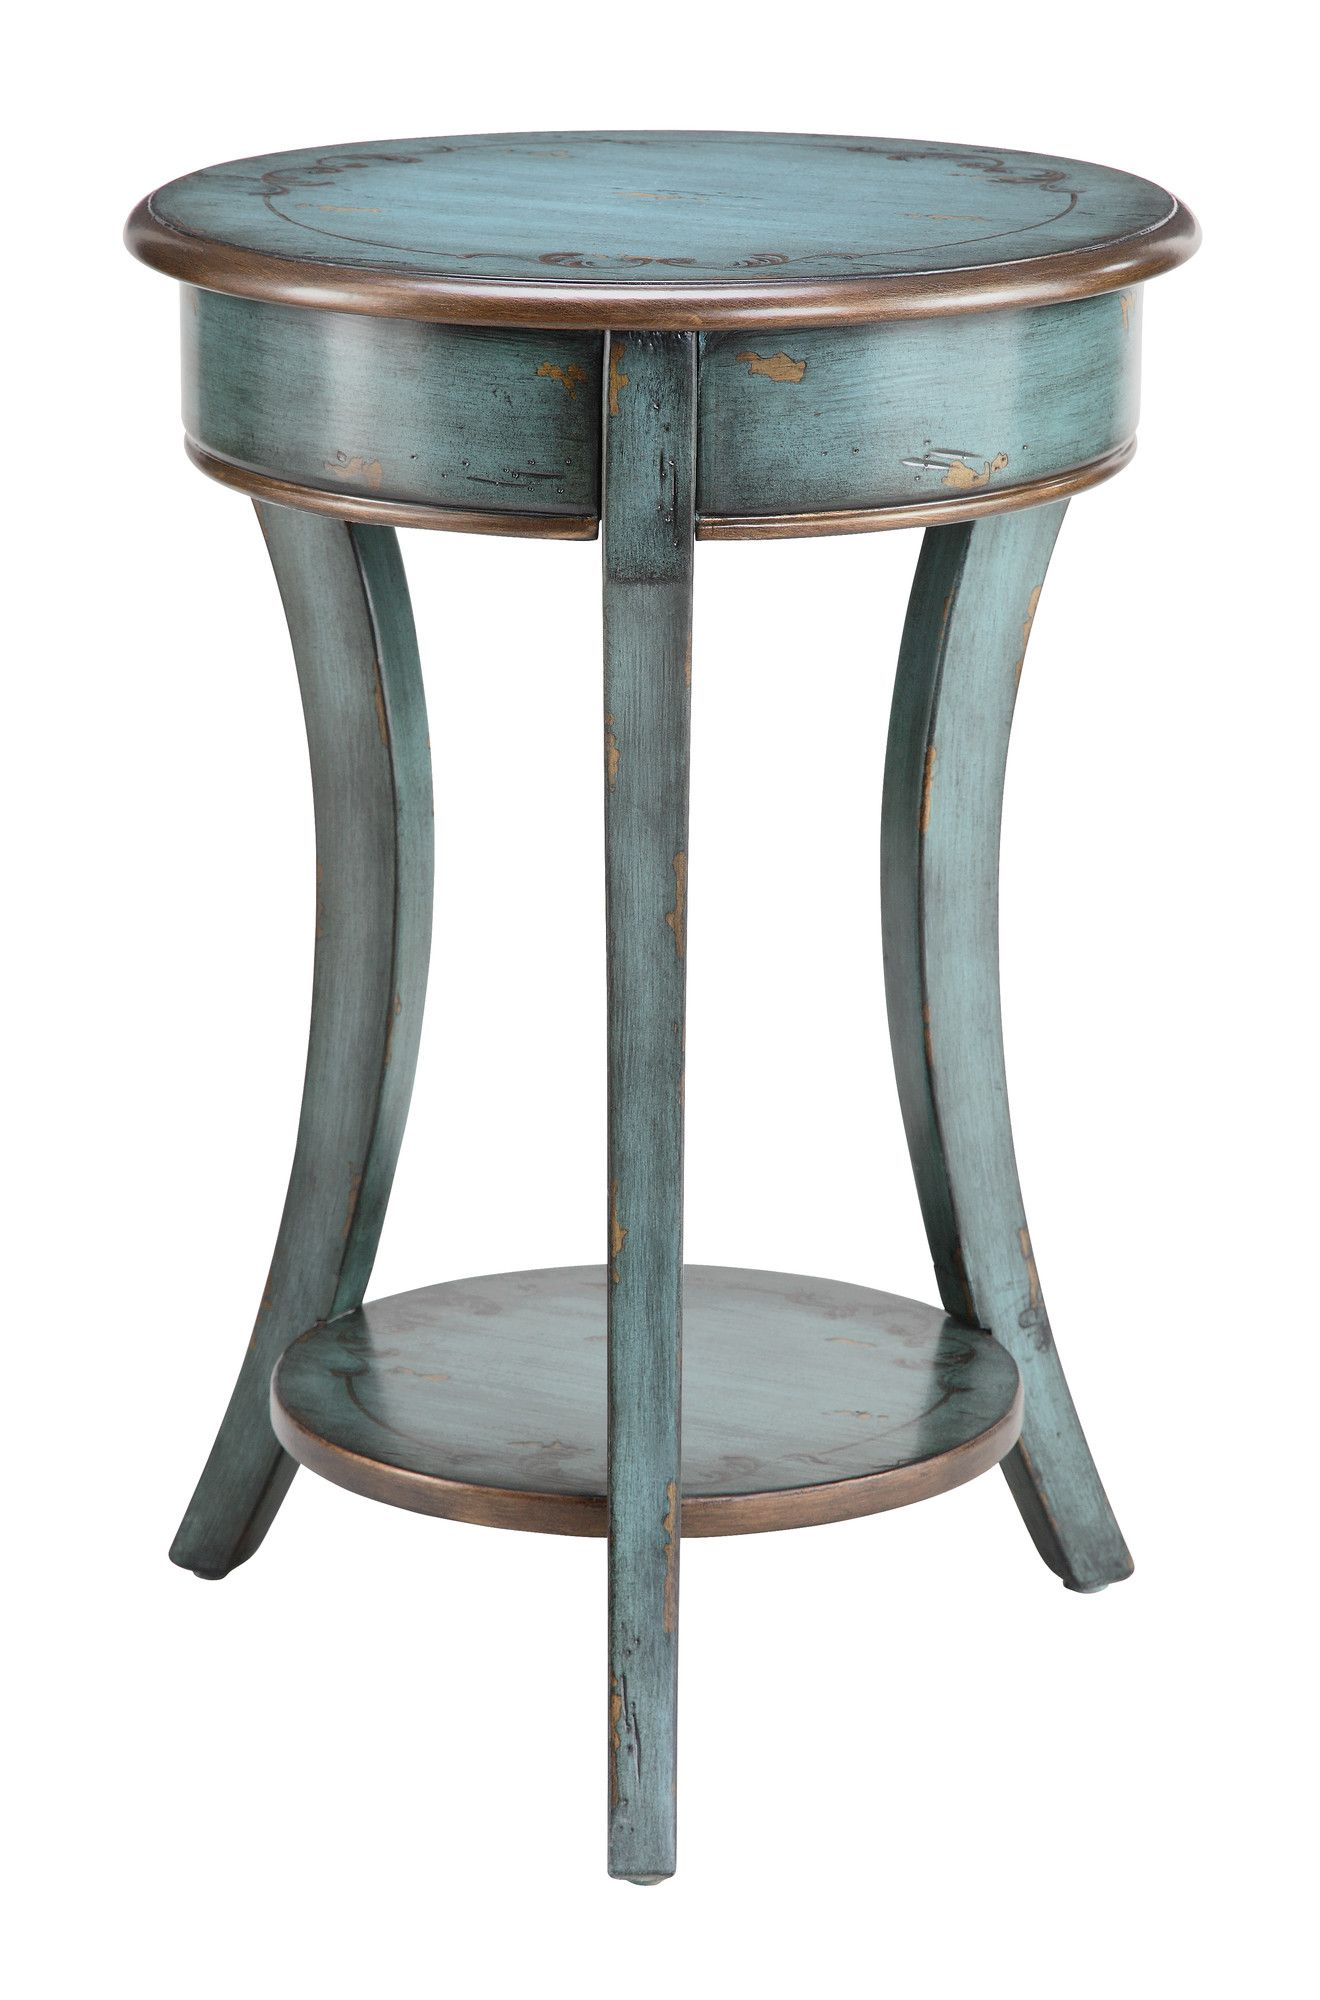 stein world painted treasures end table bronzed and distressed paint small rustic accent job room essentials lamp sofa with stools underneath pub height dining patio furniture